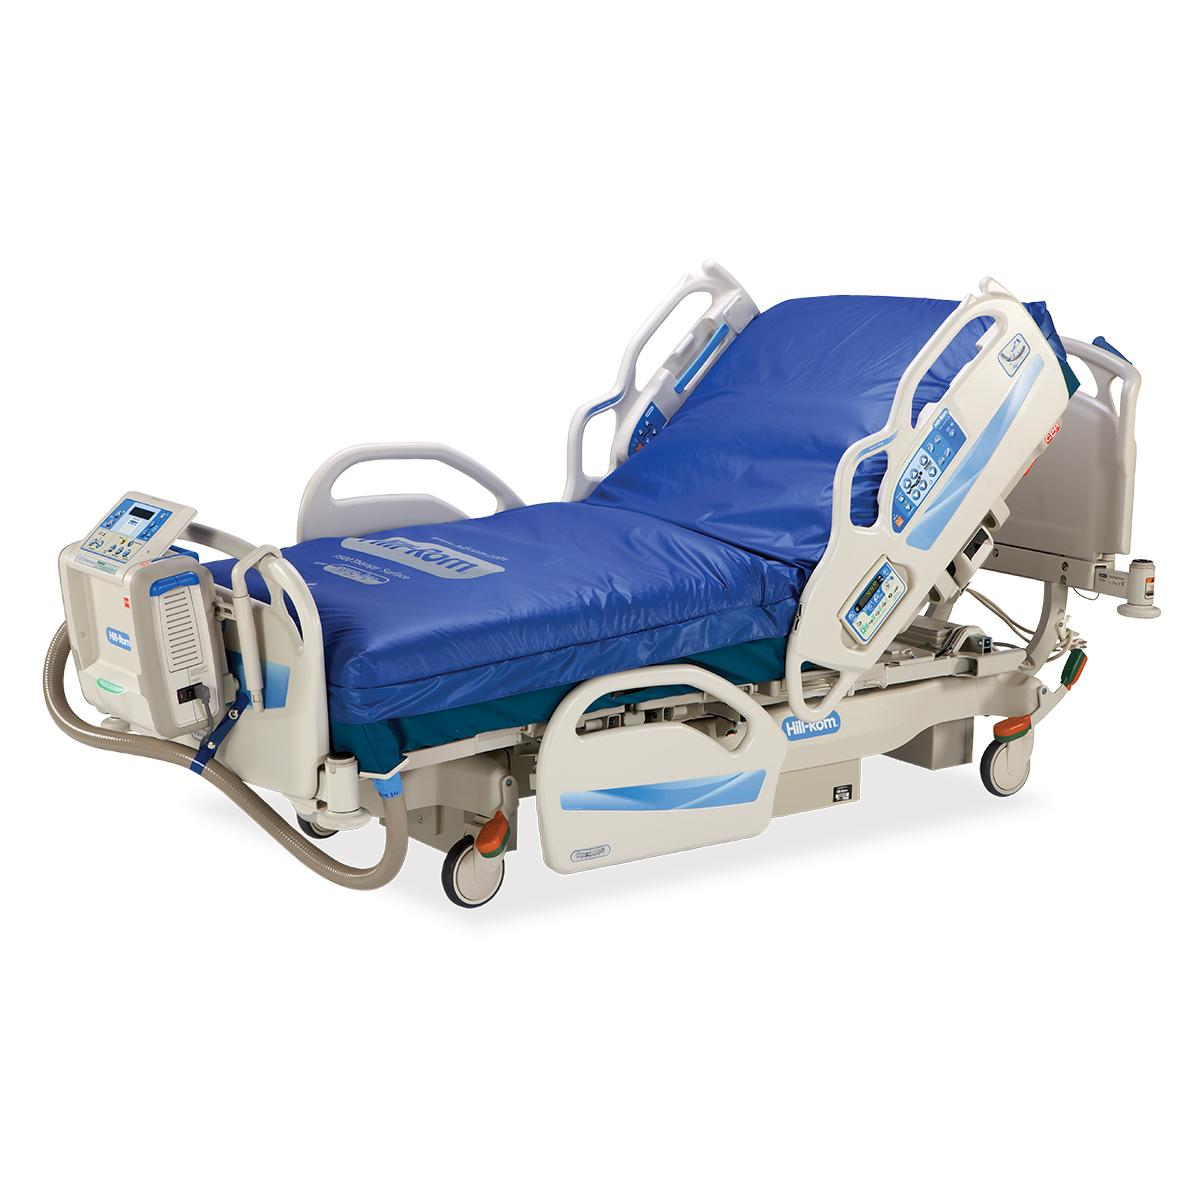 Advanta 2 Med Surg Bed, 3/4 view, right side, shown with P500 surface